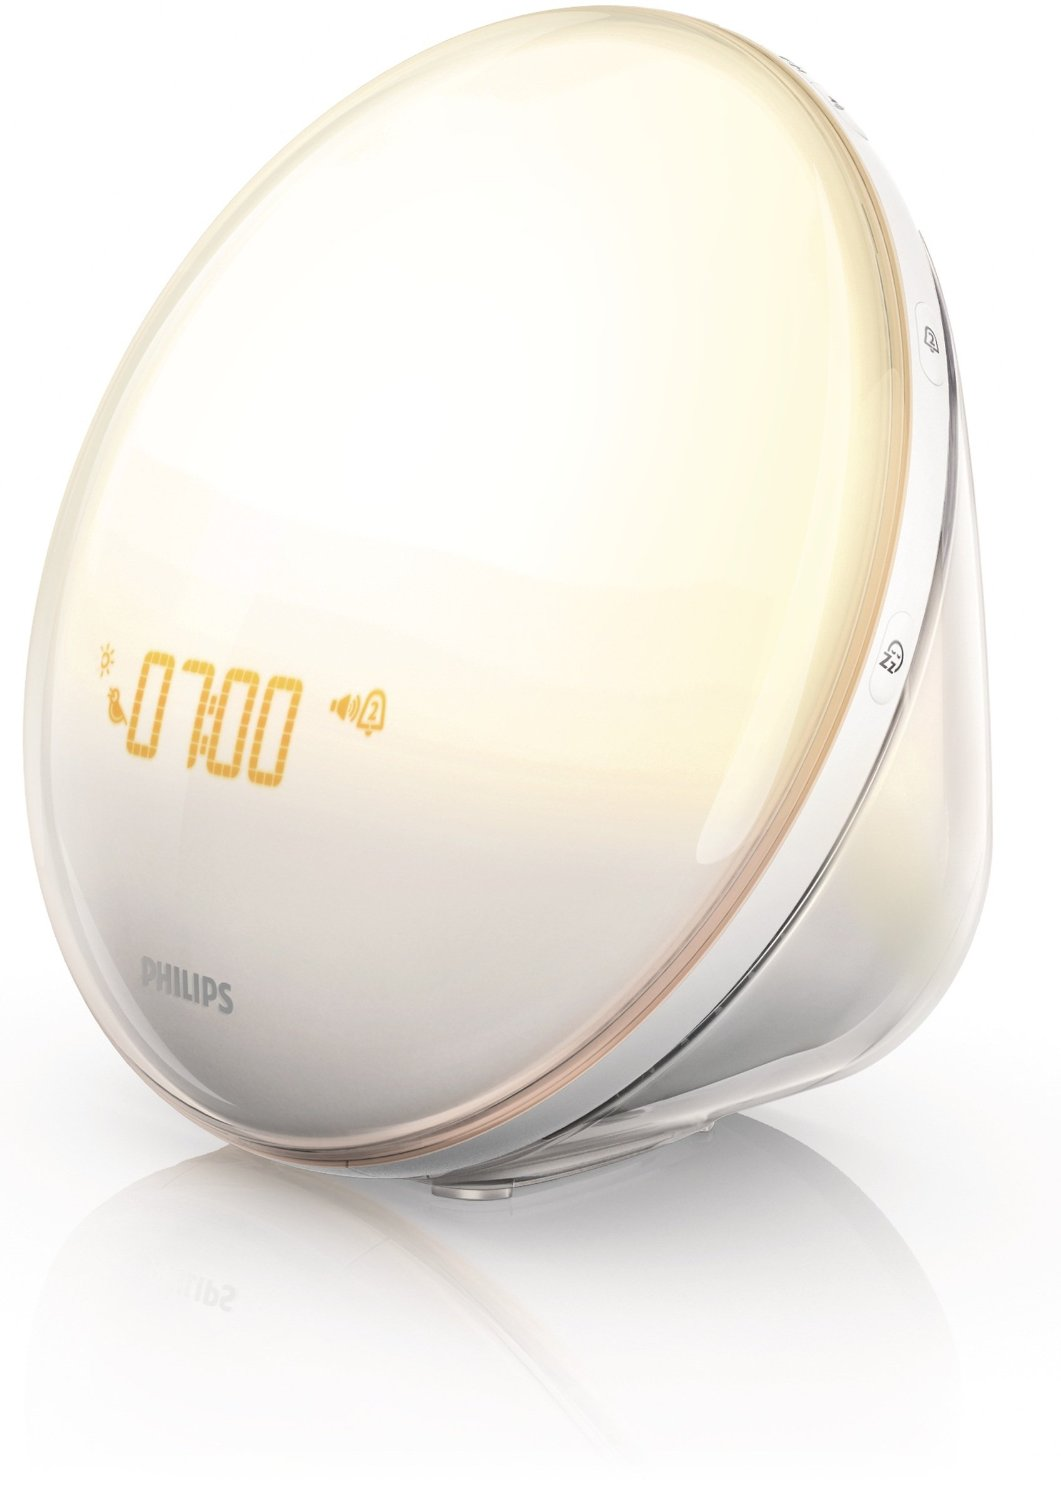 Philips Morning Wake-Up Light With Colored Sunrise Simulation and Dusk Fading Night Light, White, HF3520